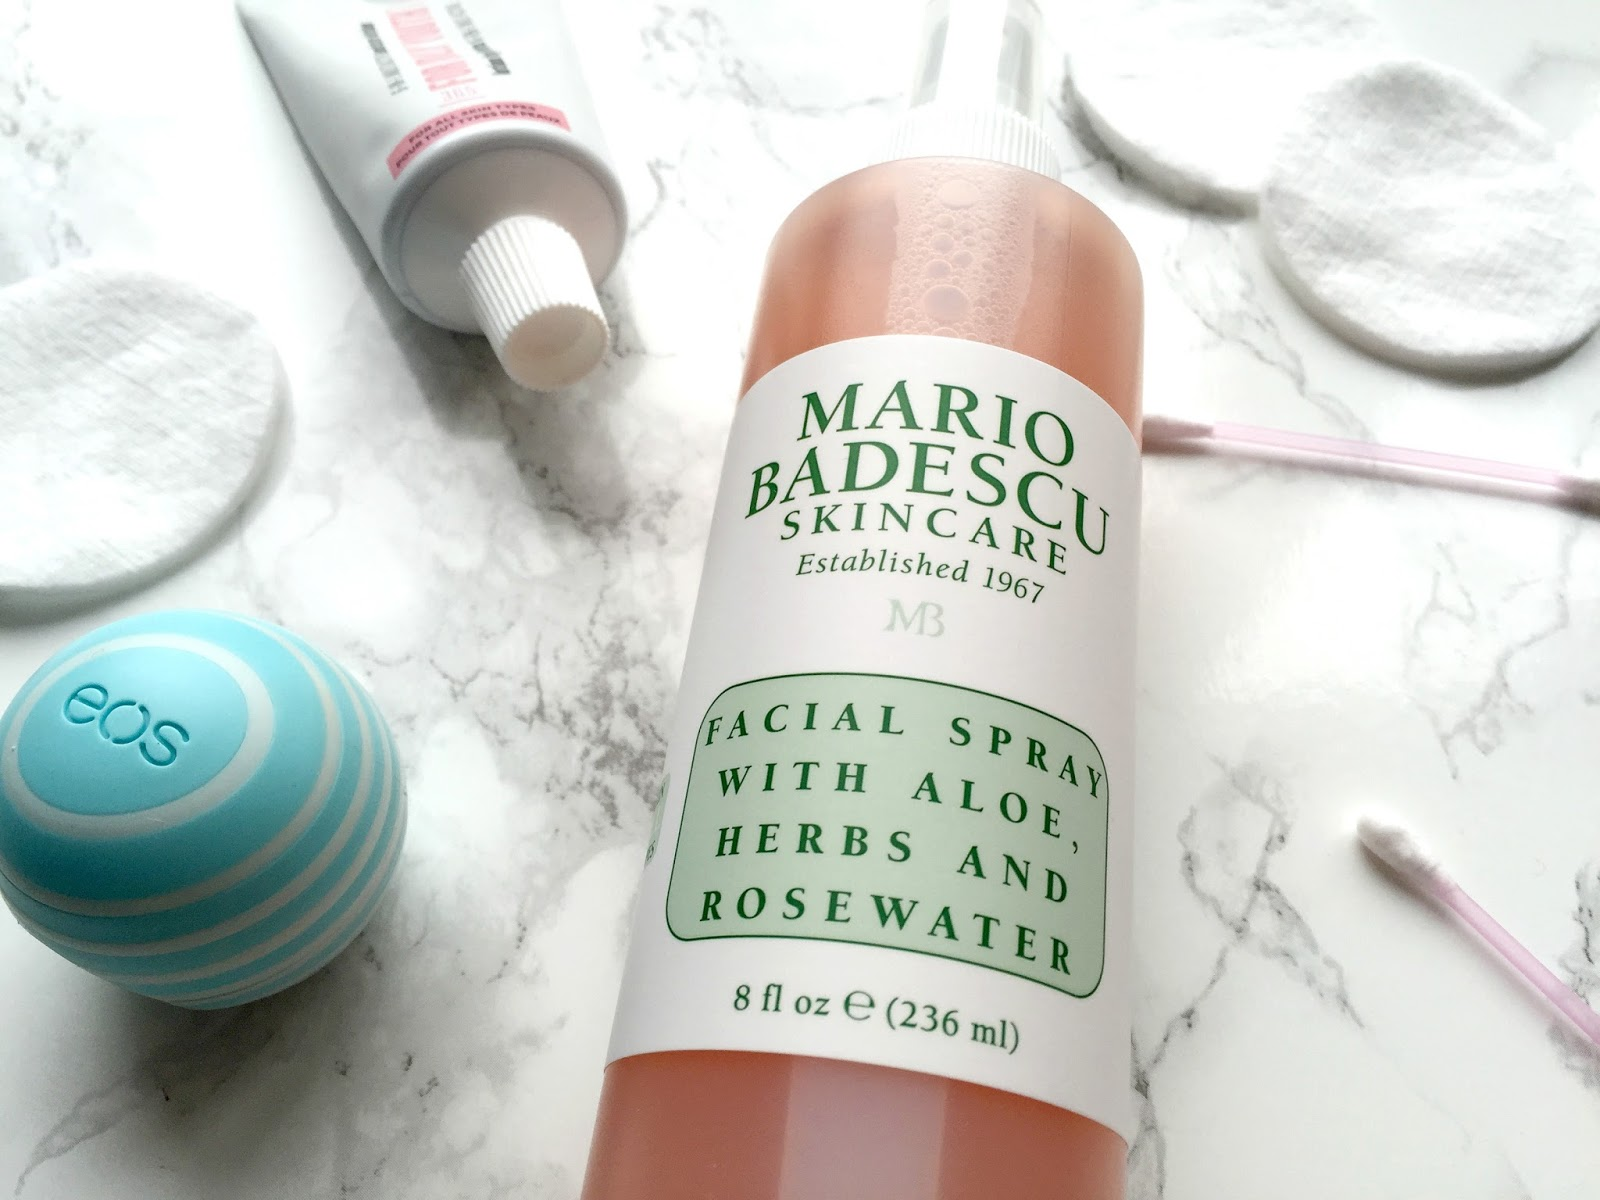 Kylie Jenner Mario Badescu Rosewater, Mac fix+ cheap dupe, dupe for mac fix+ review, mario badescu rosewater review, finishing spray mario badescu,